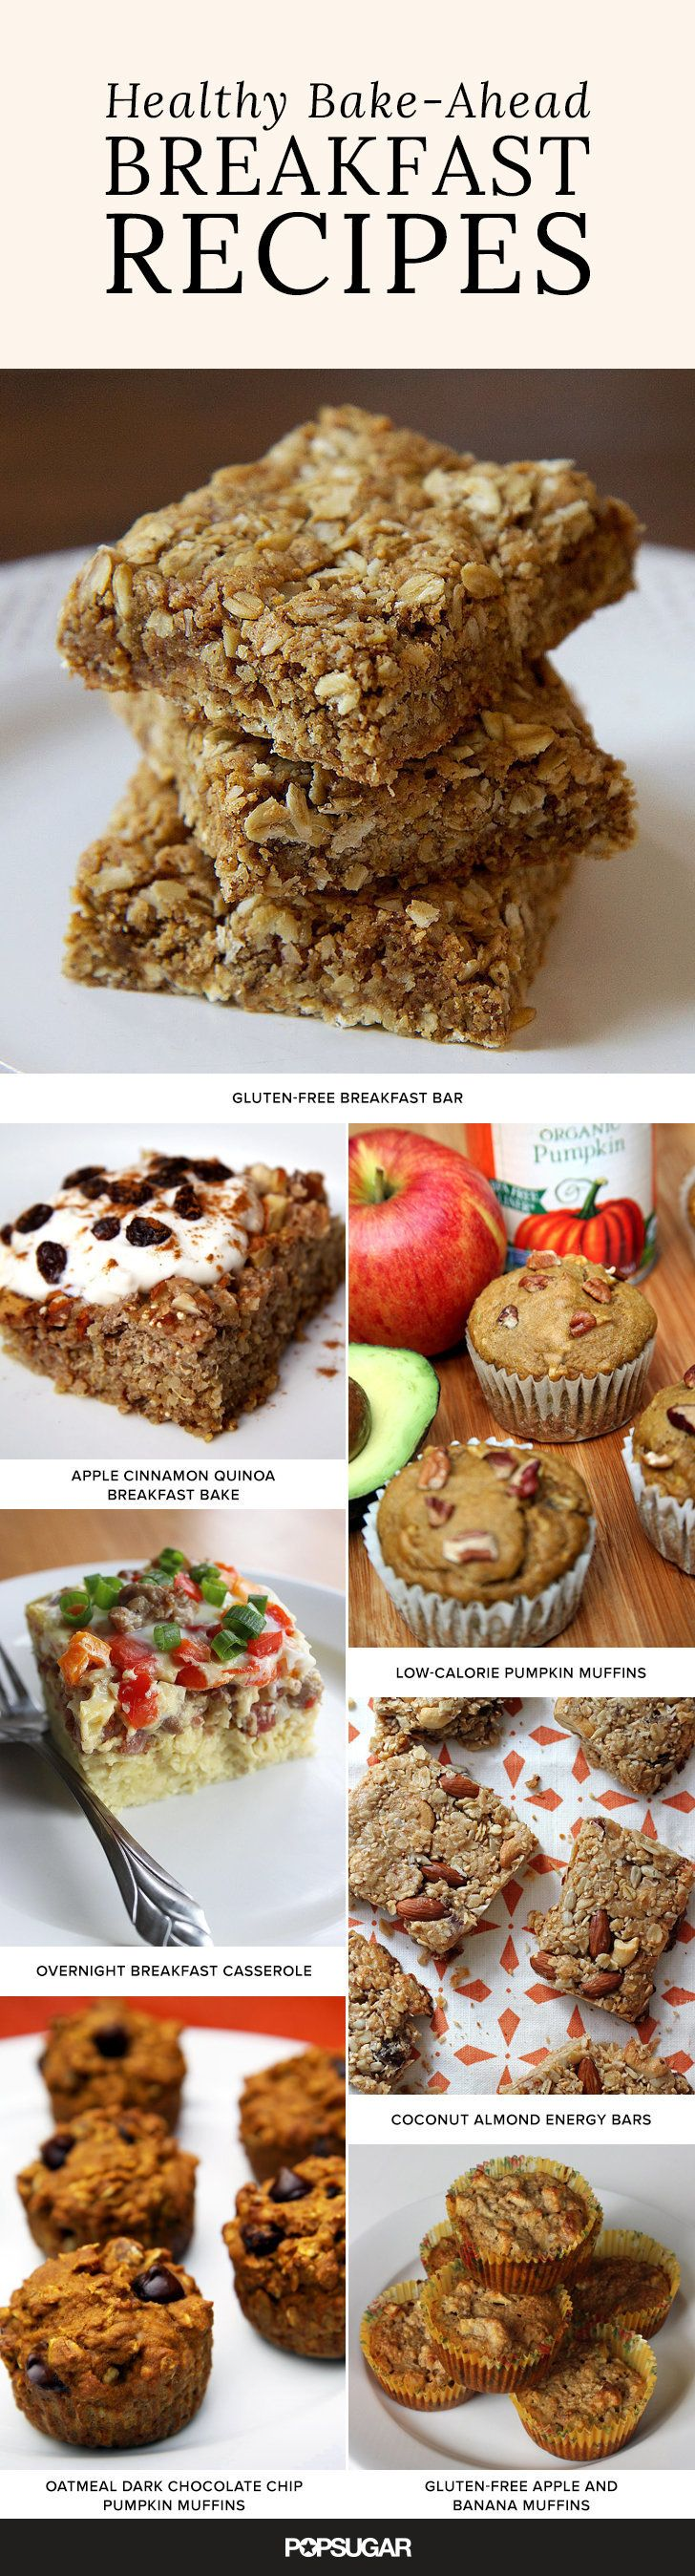 Stop the weight-loss sabotage by taking time during the weekend to bake a big batch of healthier, lower-calorie, and lower-fat options that you can grab as you head out the door. These breakfast batches are just what you need.